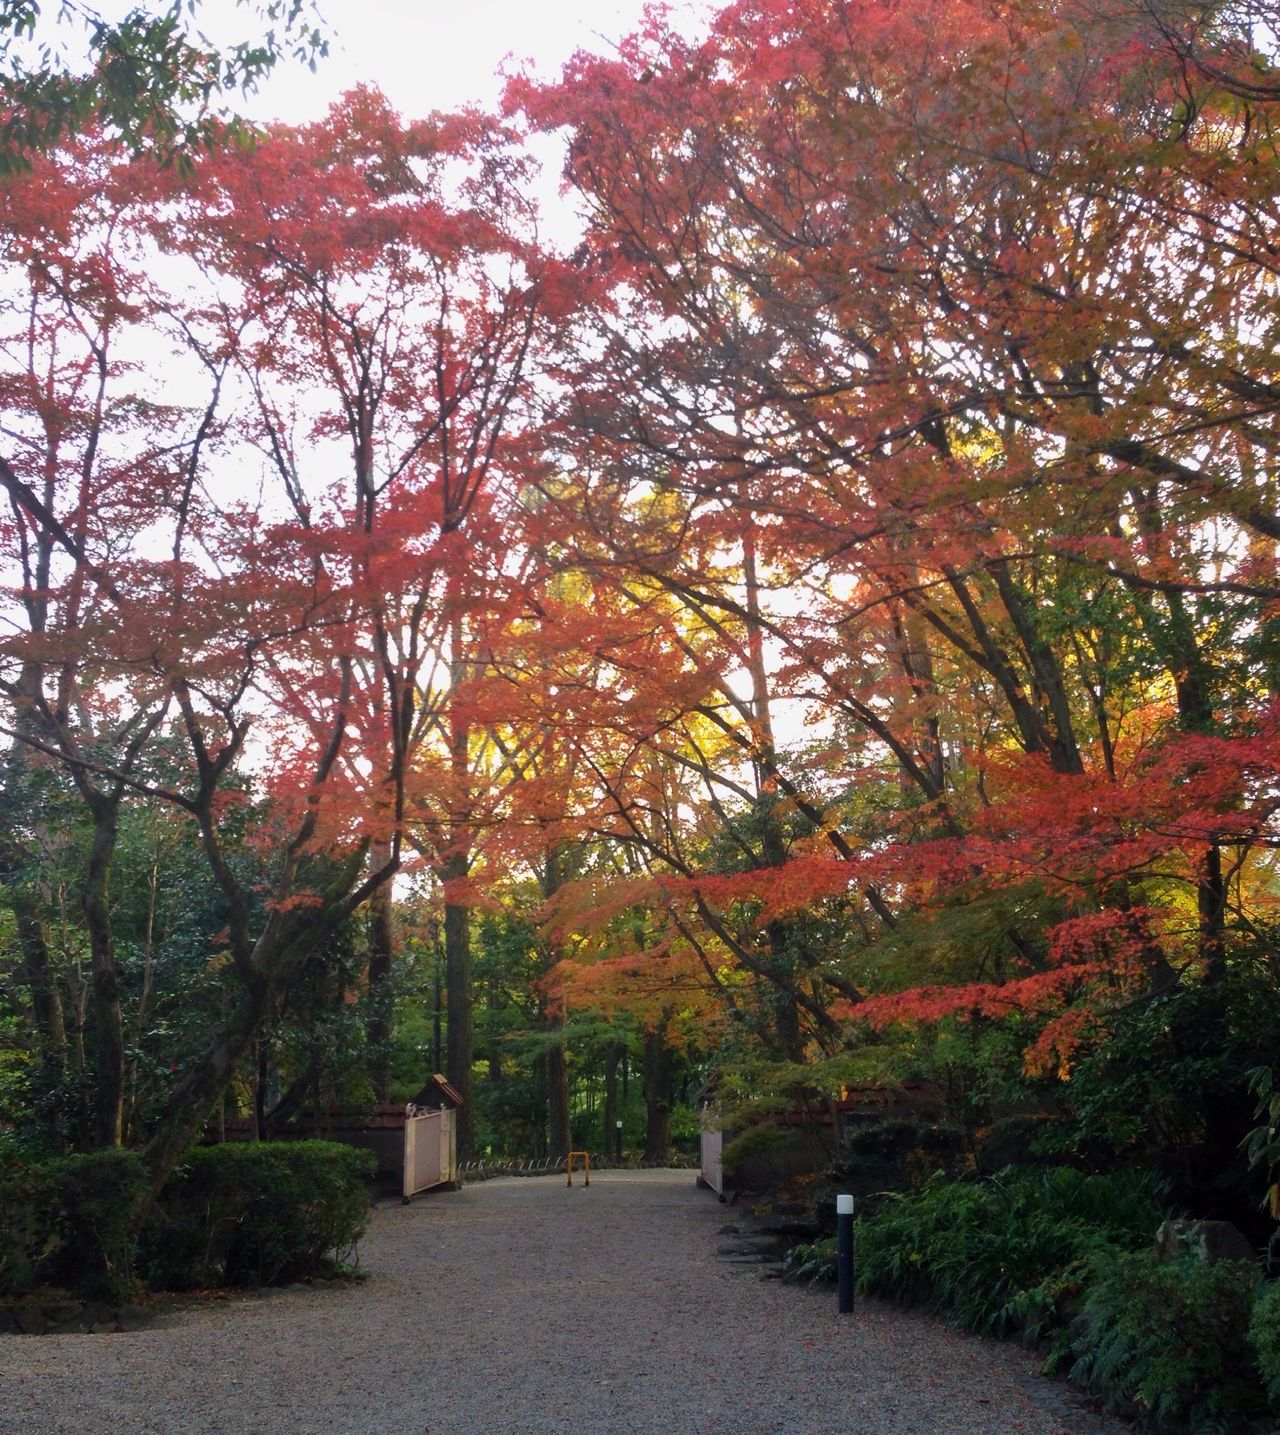 Autumn Colors Autumn Leaves Fall Beauty Fall Colors Colorful Autumn Museum Garden Kyoto Japan